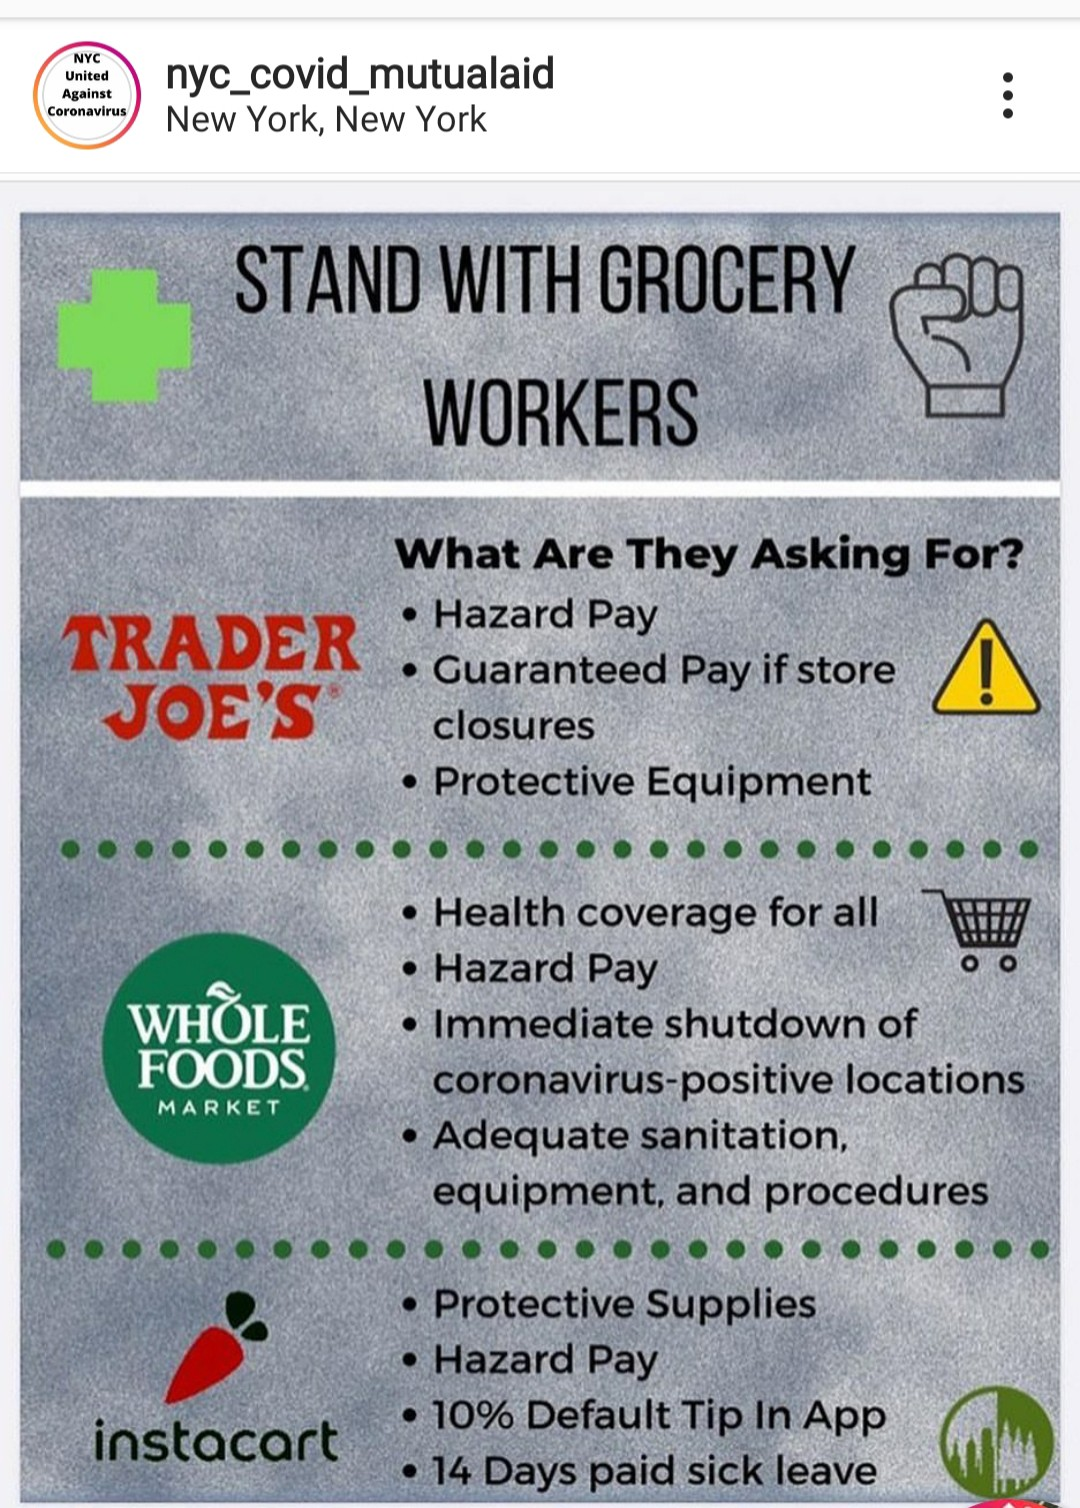 Image outlining what grocery store workers at some establishments are asking for right now.